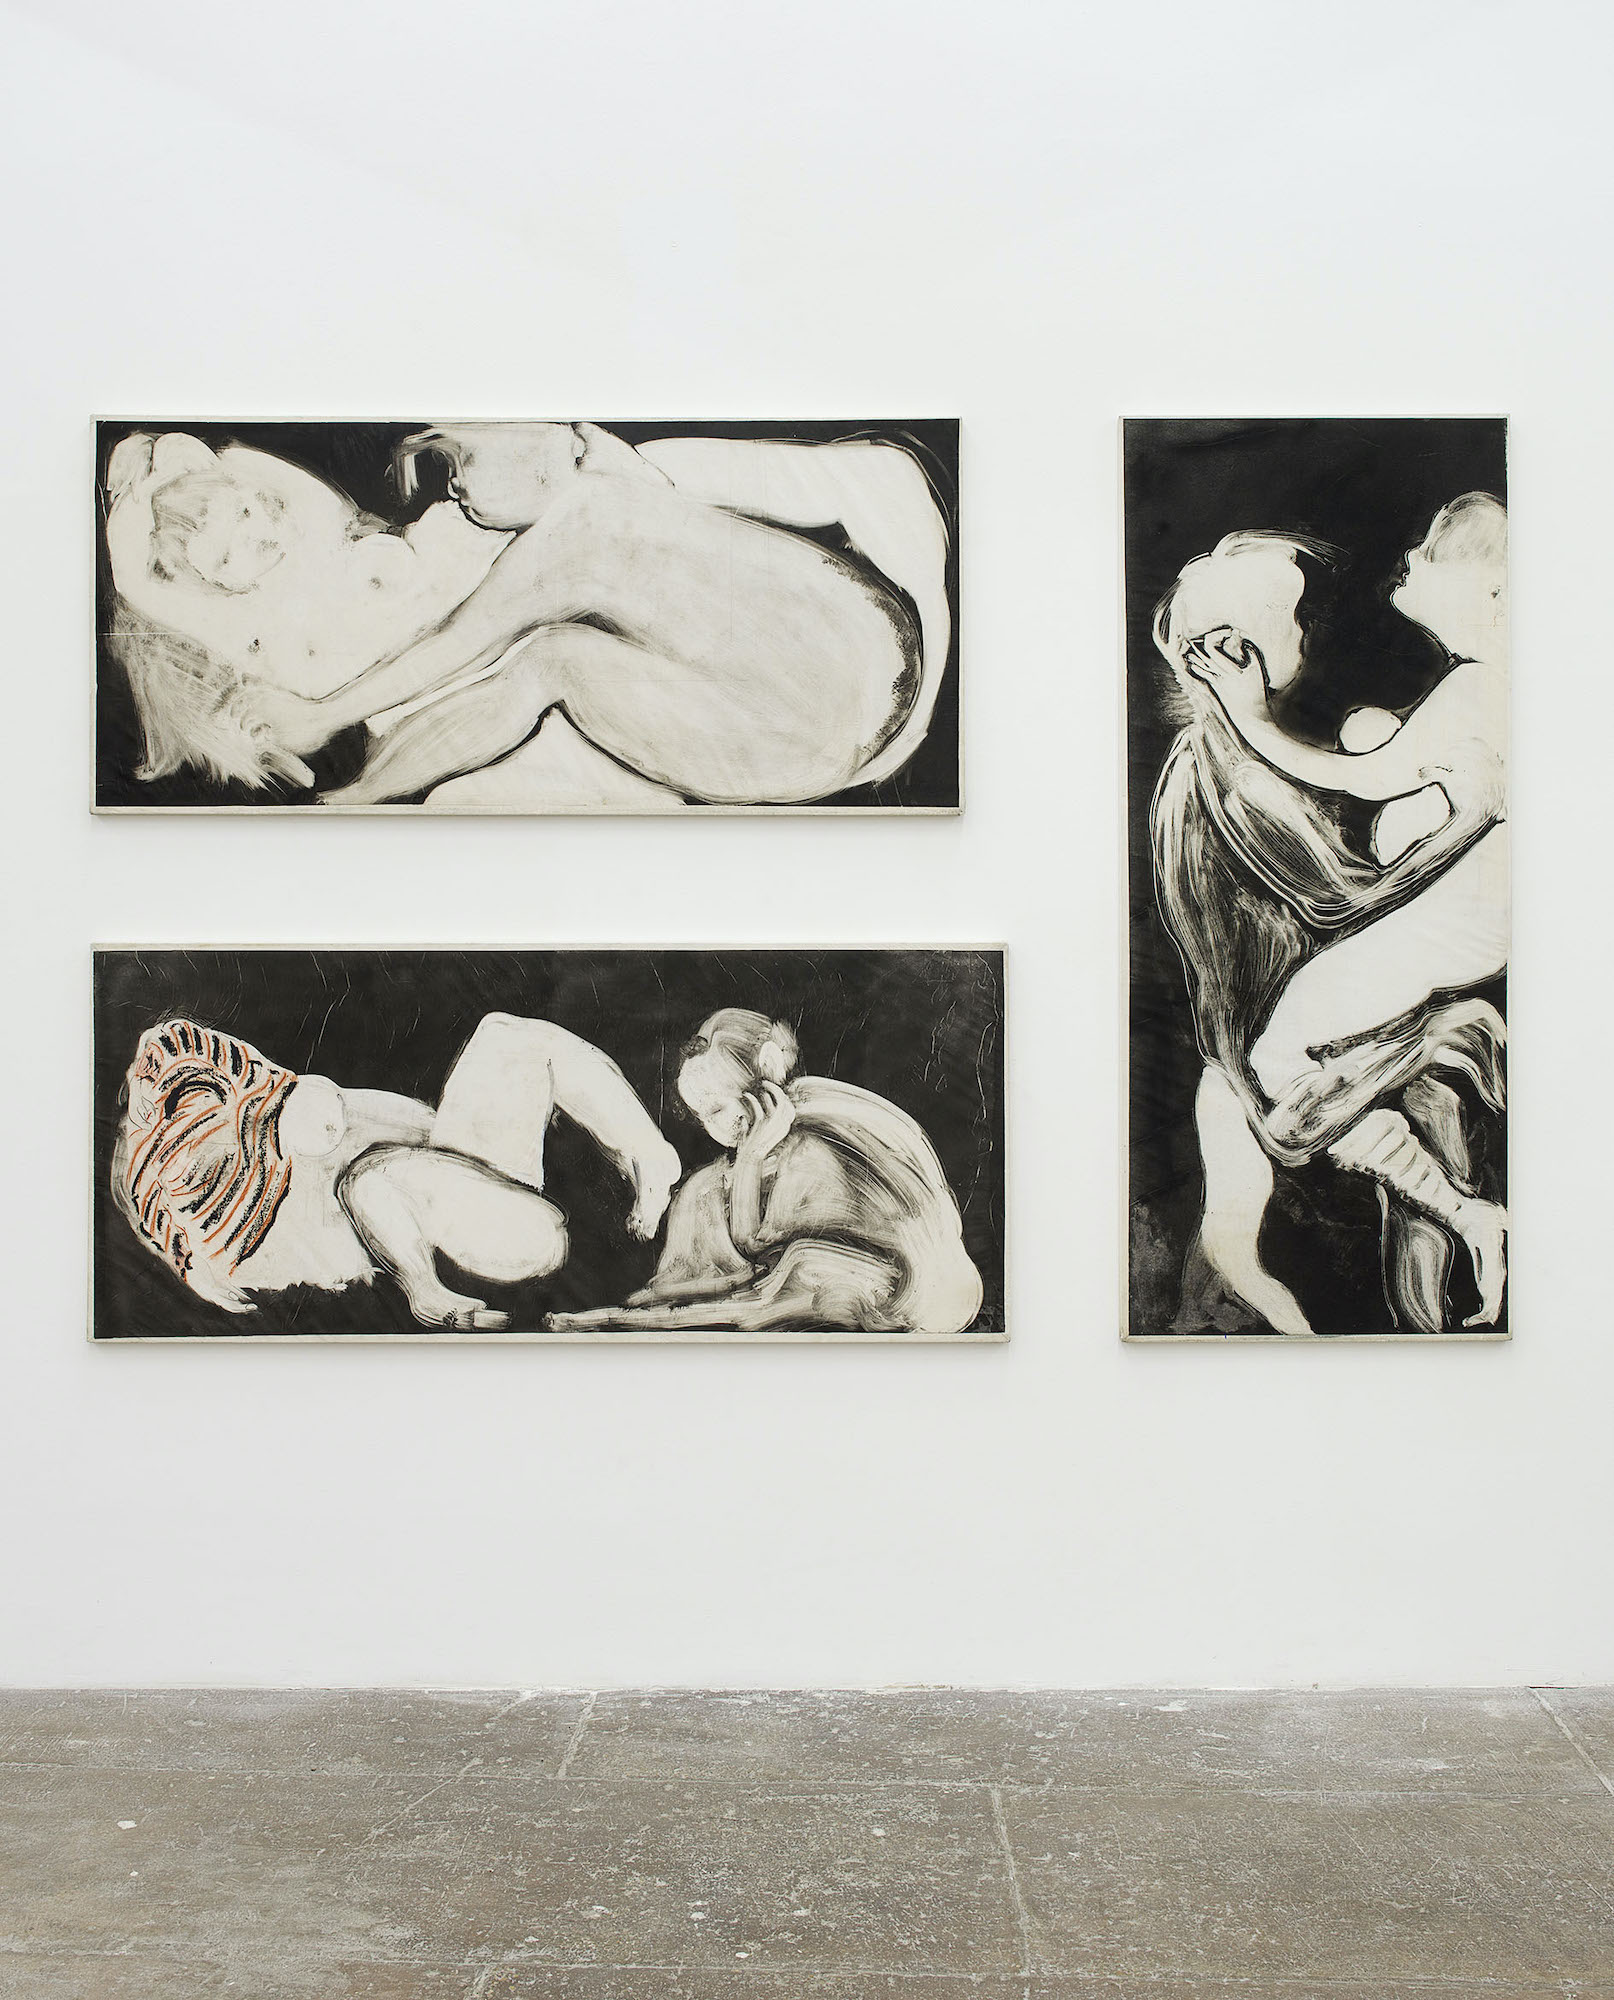 Isabella Ducrot at T293, Image courtesy of the artist and T293, Rome